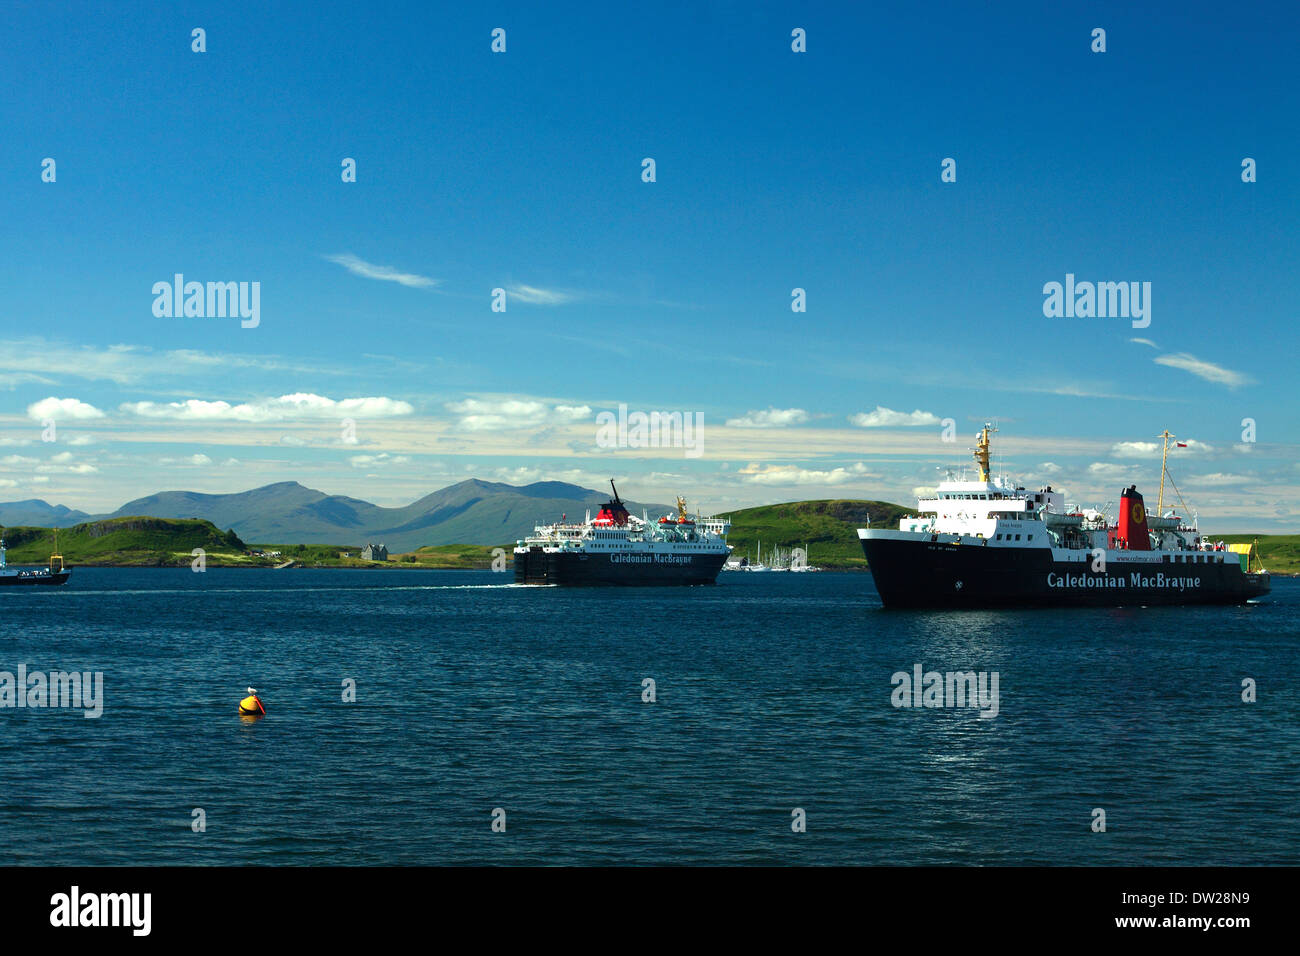 Caledonian MacBrayne Ferry and Mull from Oban Stock Photo